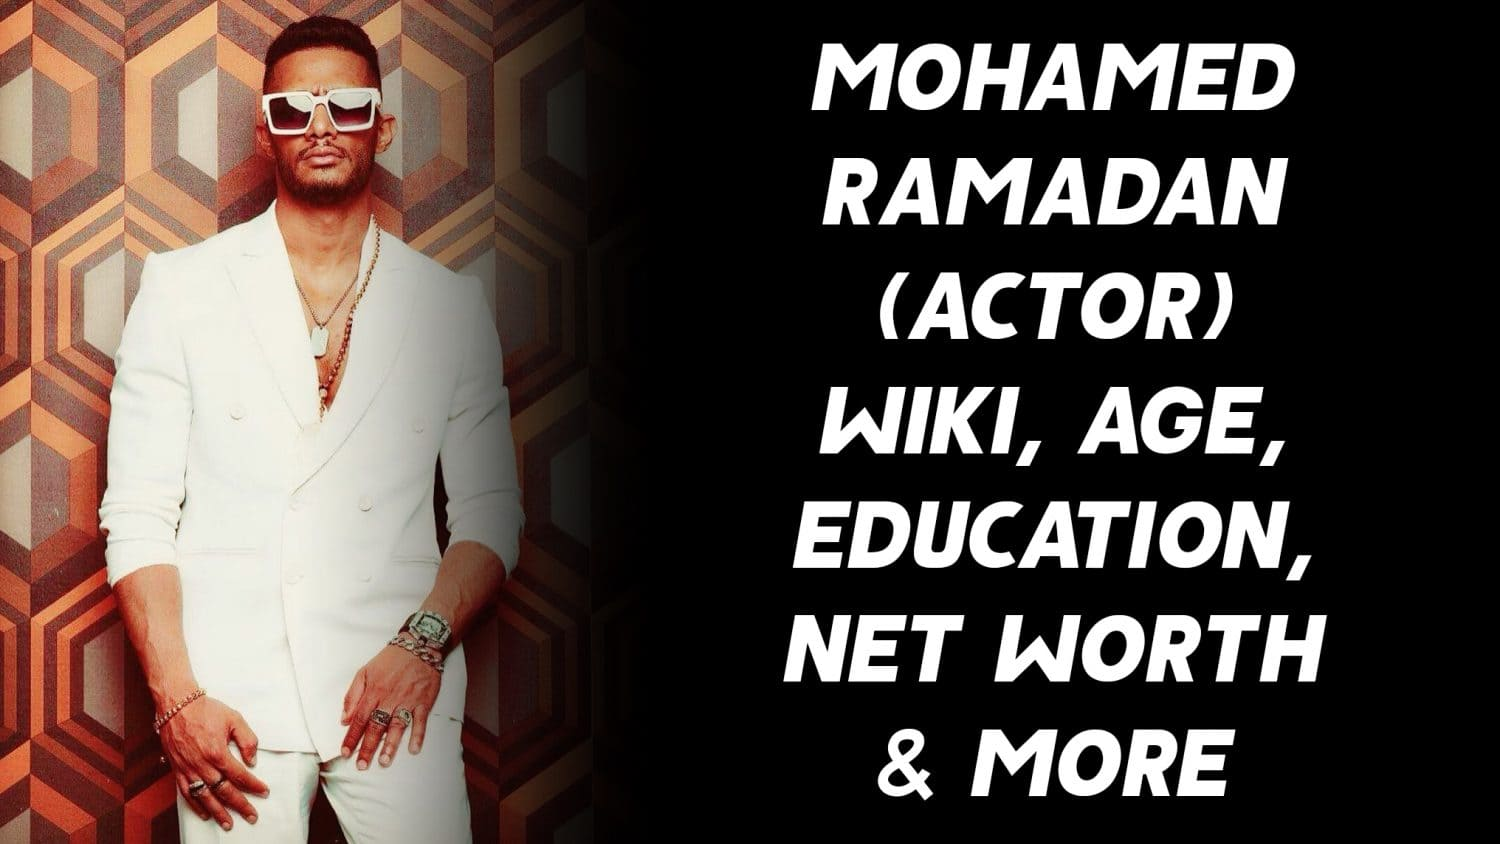 Mohamed Ramadan (Actor) Wiki, Age, Education, Net Worth & More 1